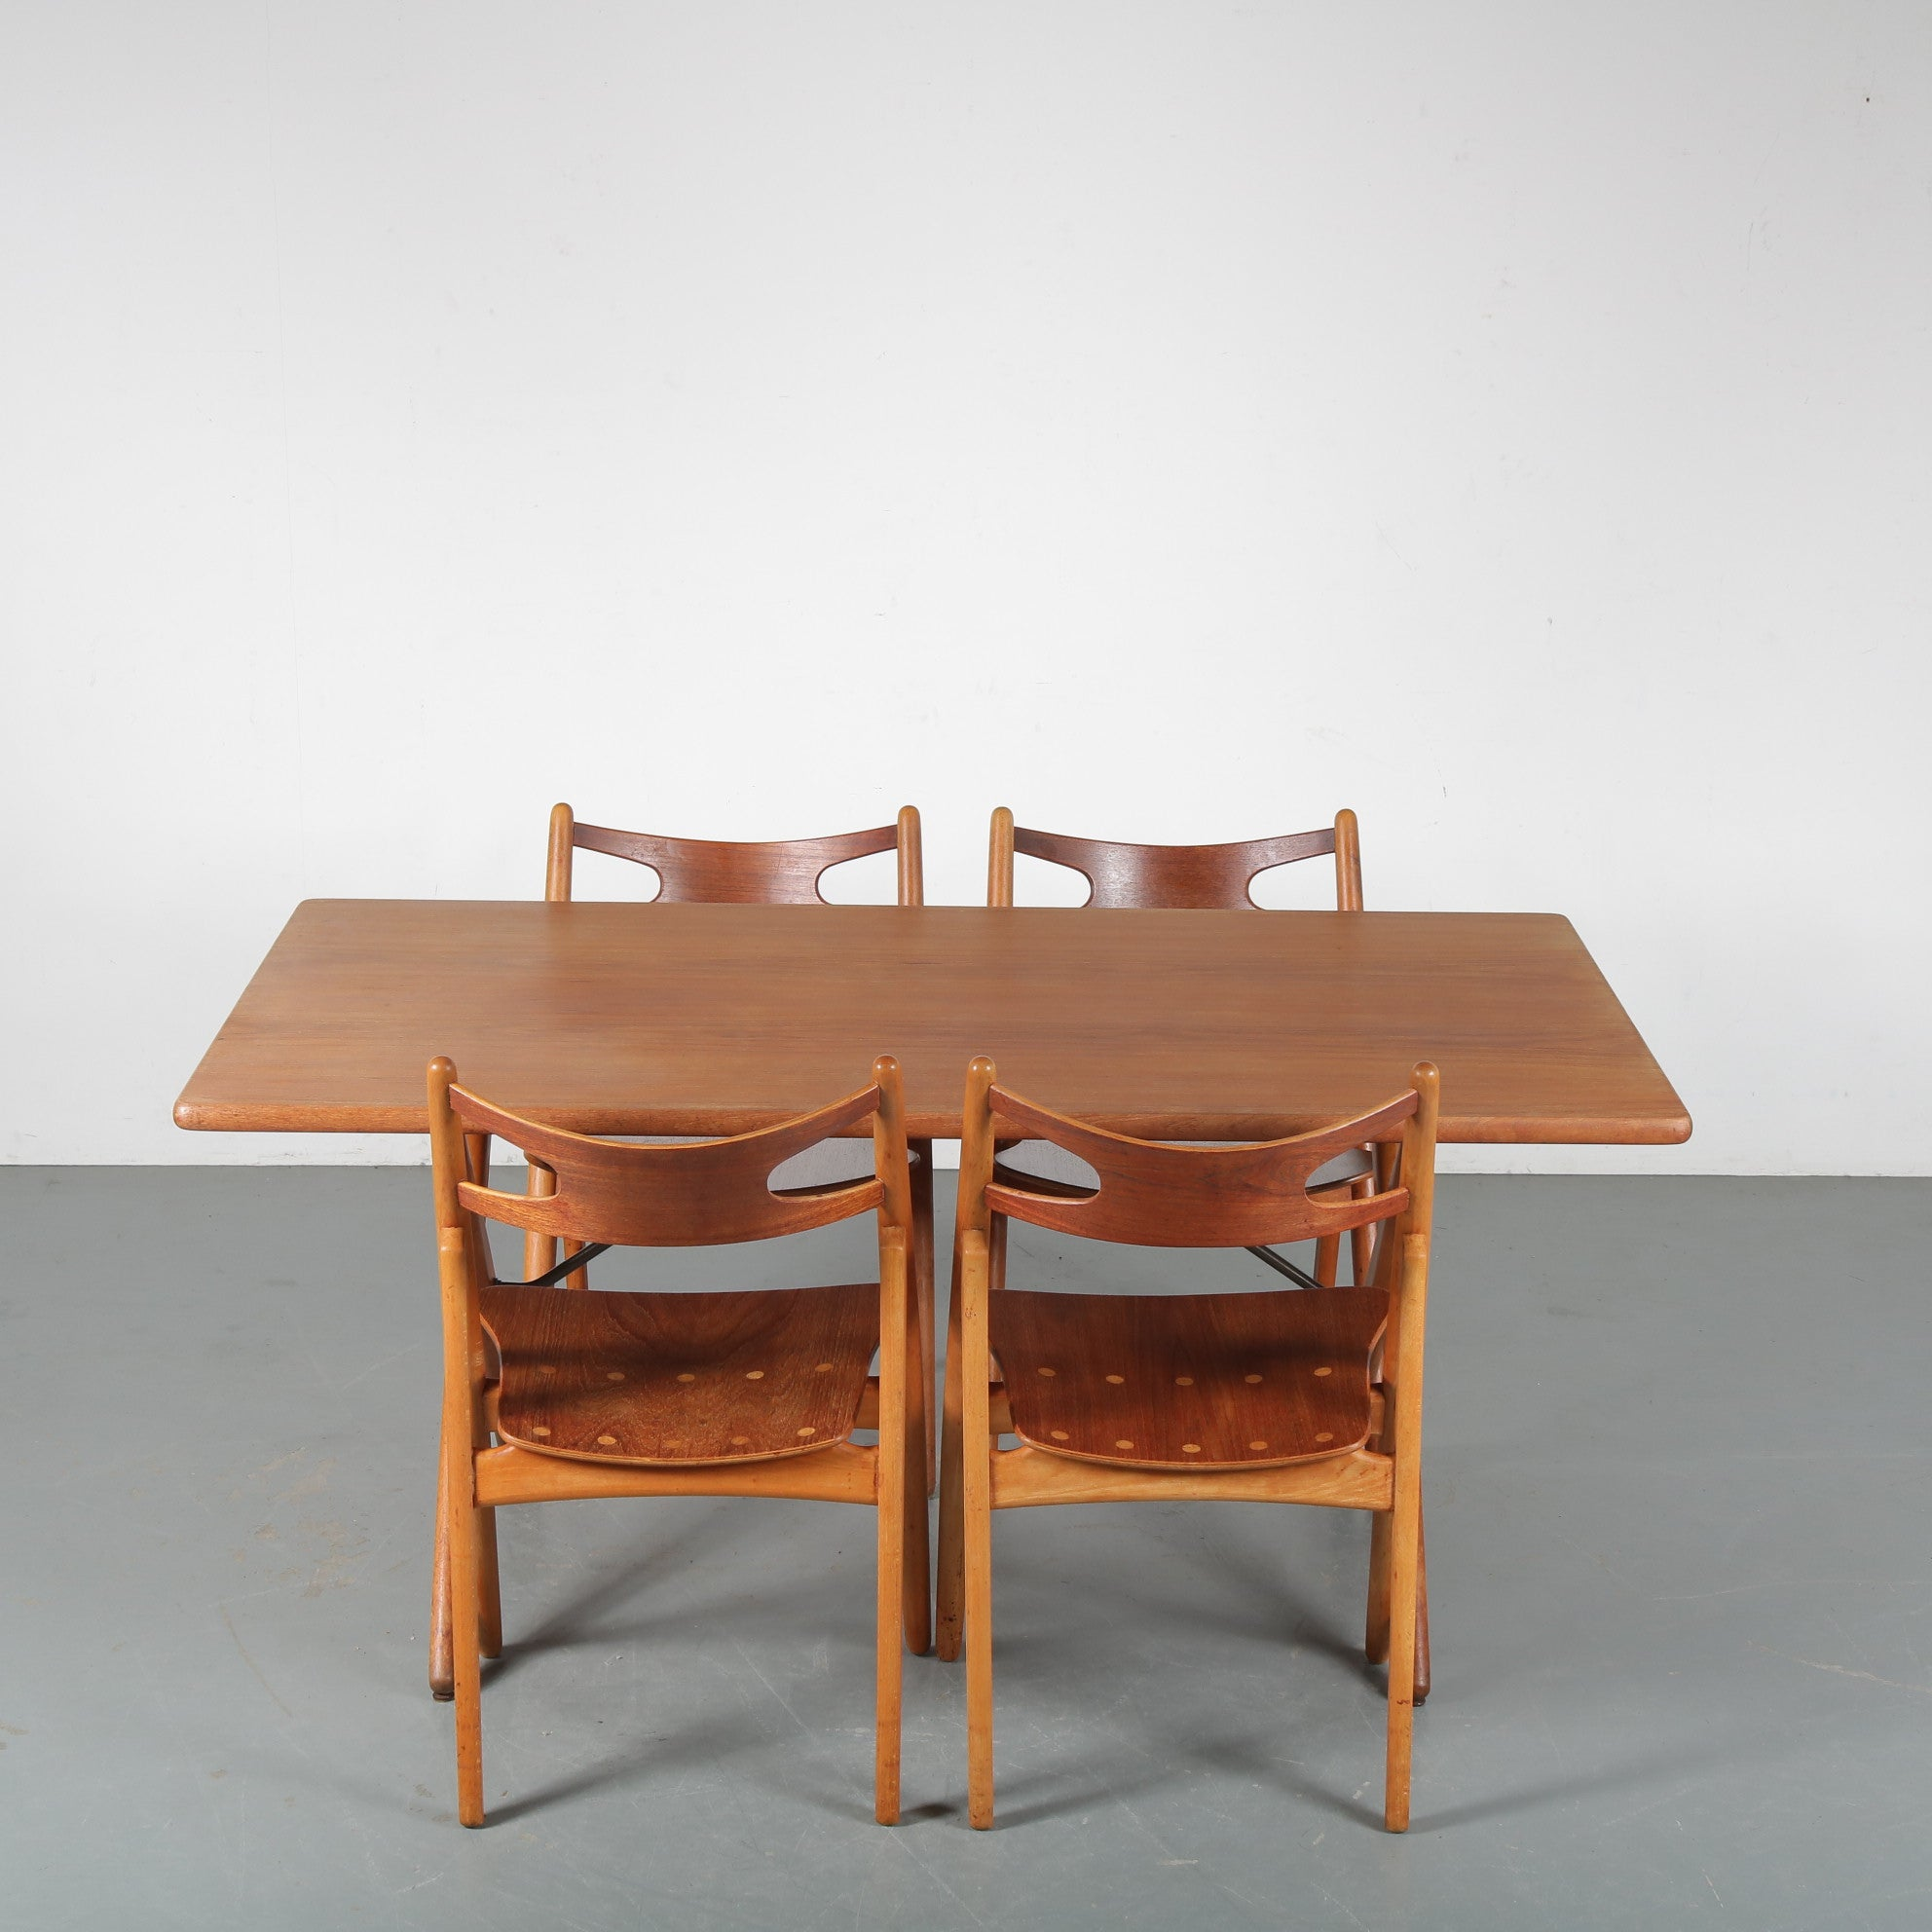 Hans J. Wegner Sawbuck Dining Set for Andreas Tuck, Denmark 1950